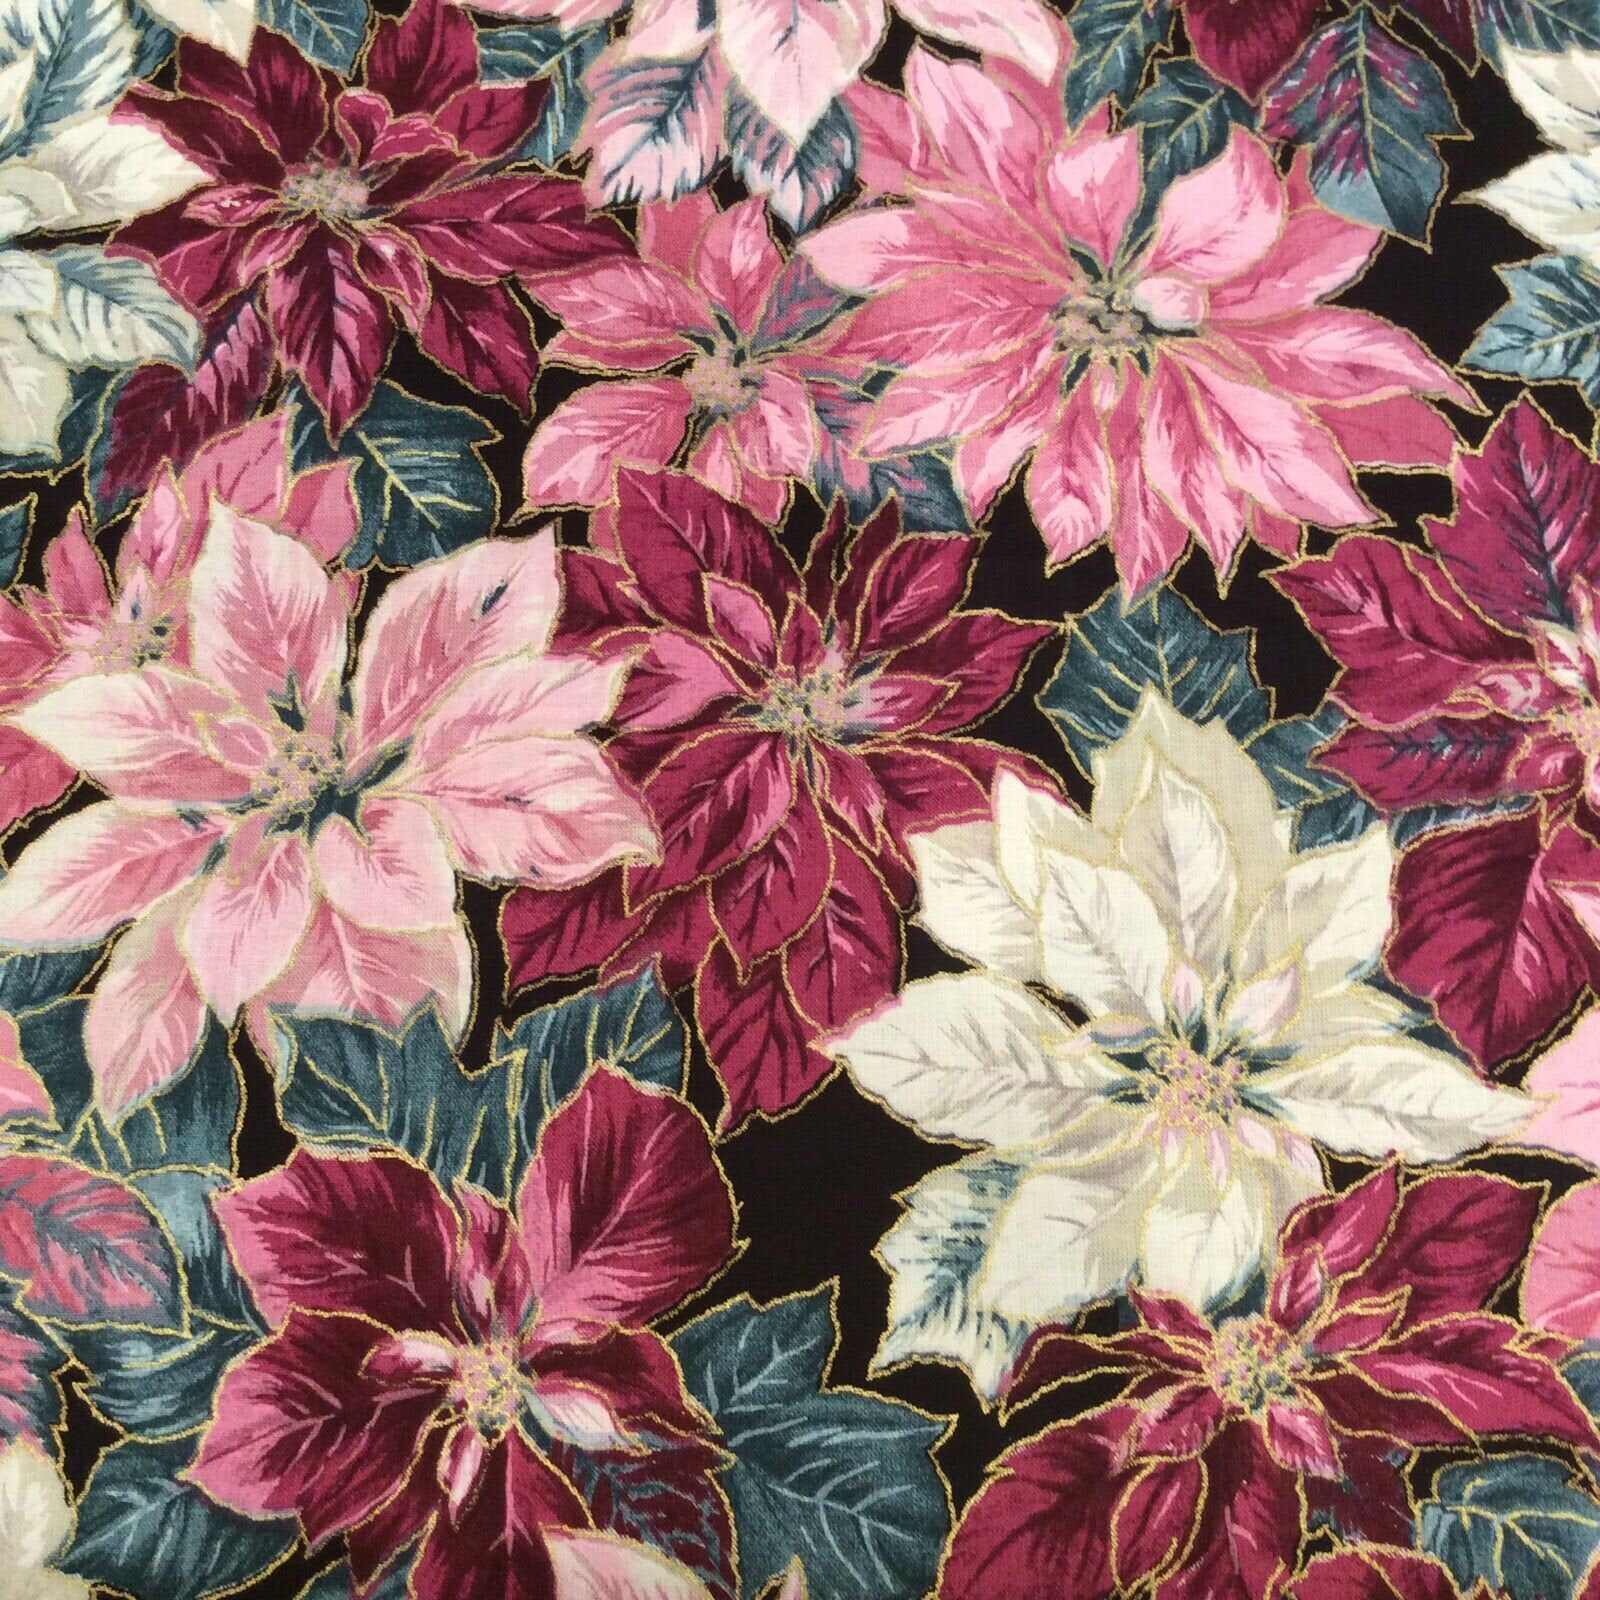 Christmas Pink White Poinsettias Fabric Material Concord Etsy In 2020 Pink Christmas Poinsettia Fabric Material